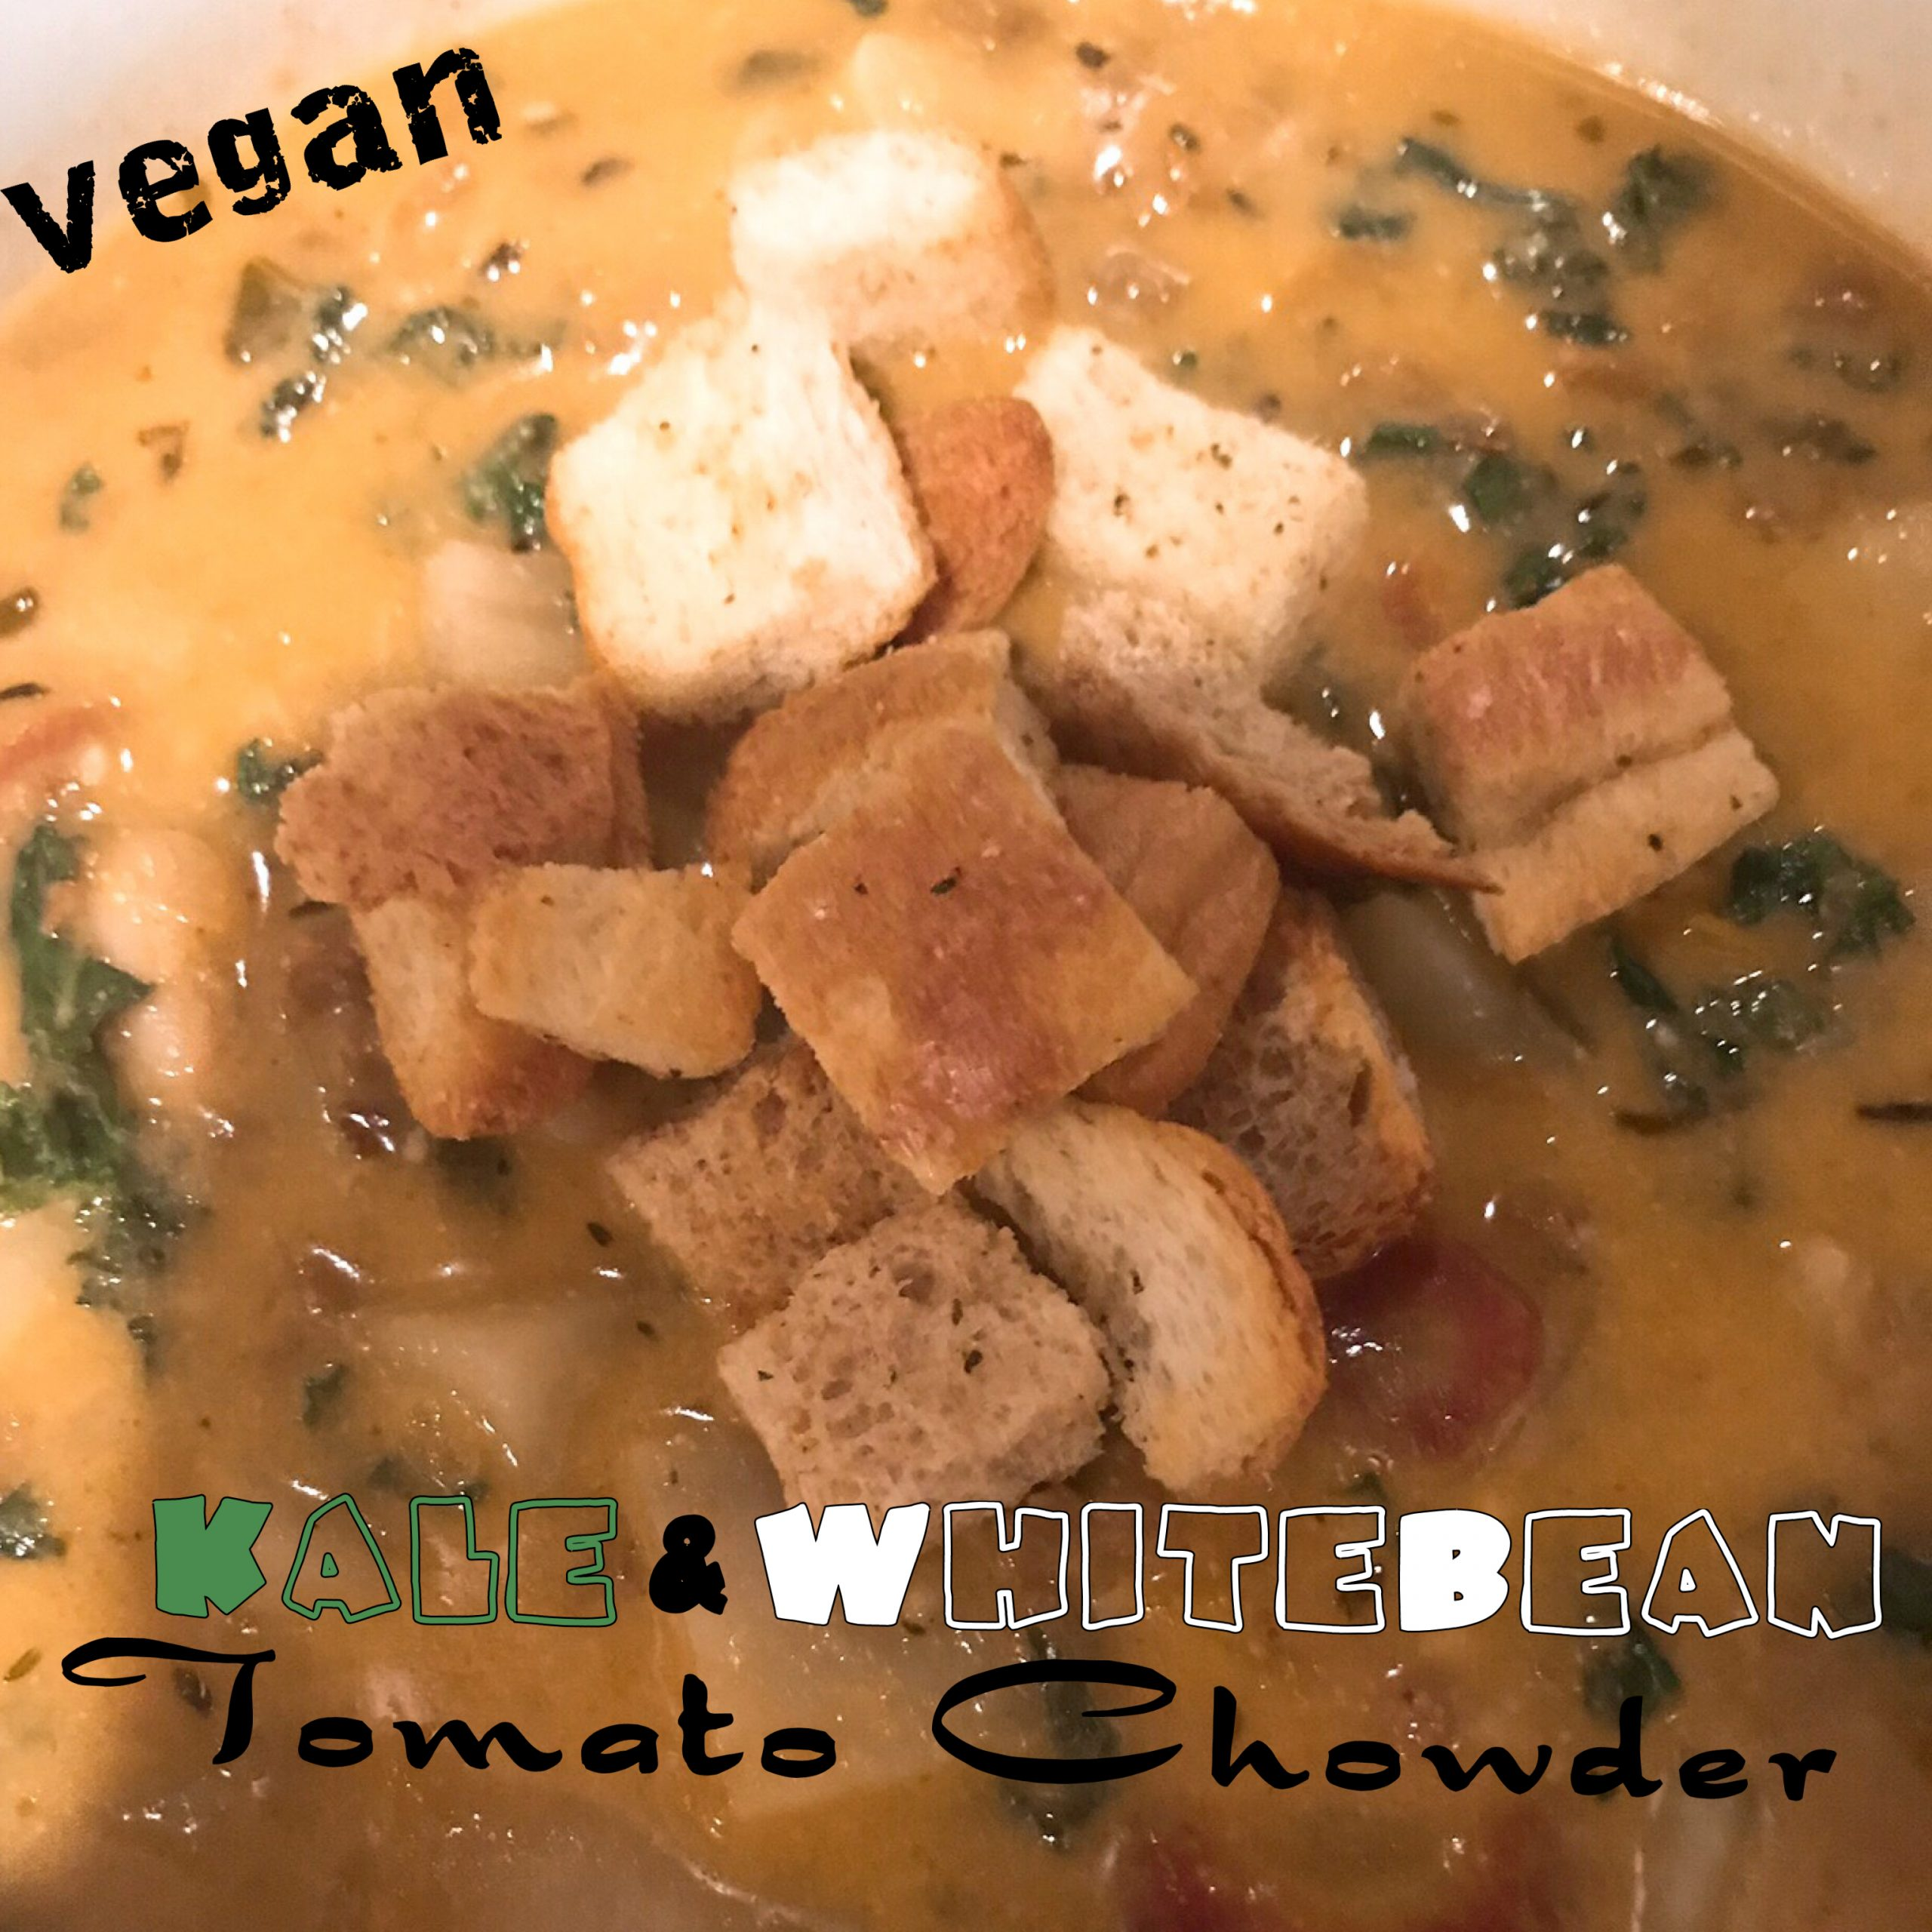 Vegan Kale & White Bean Tomato Chowder